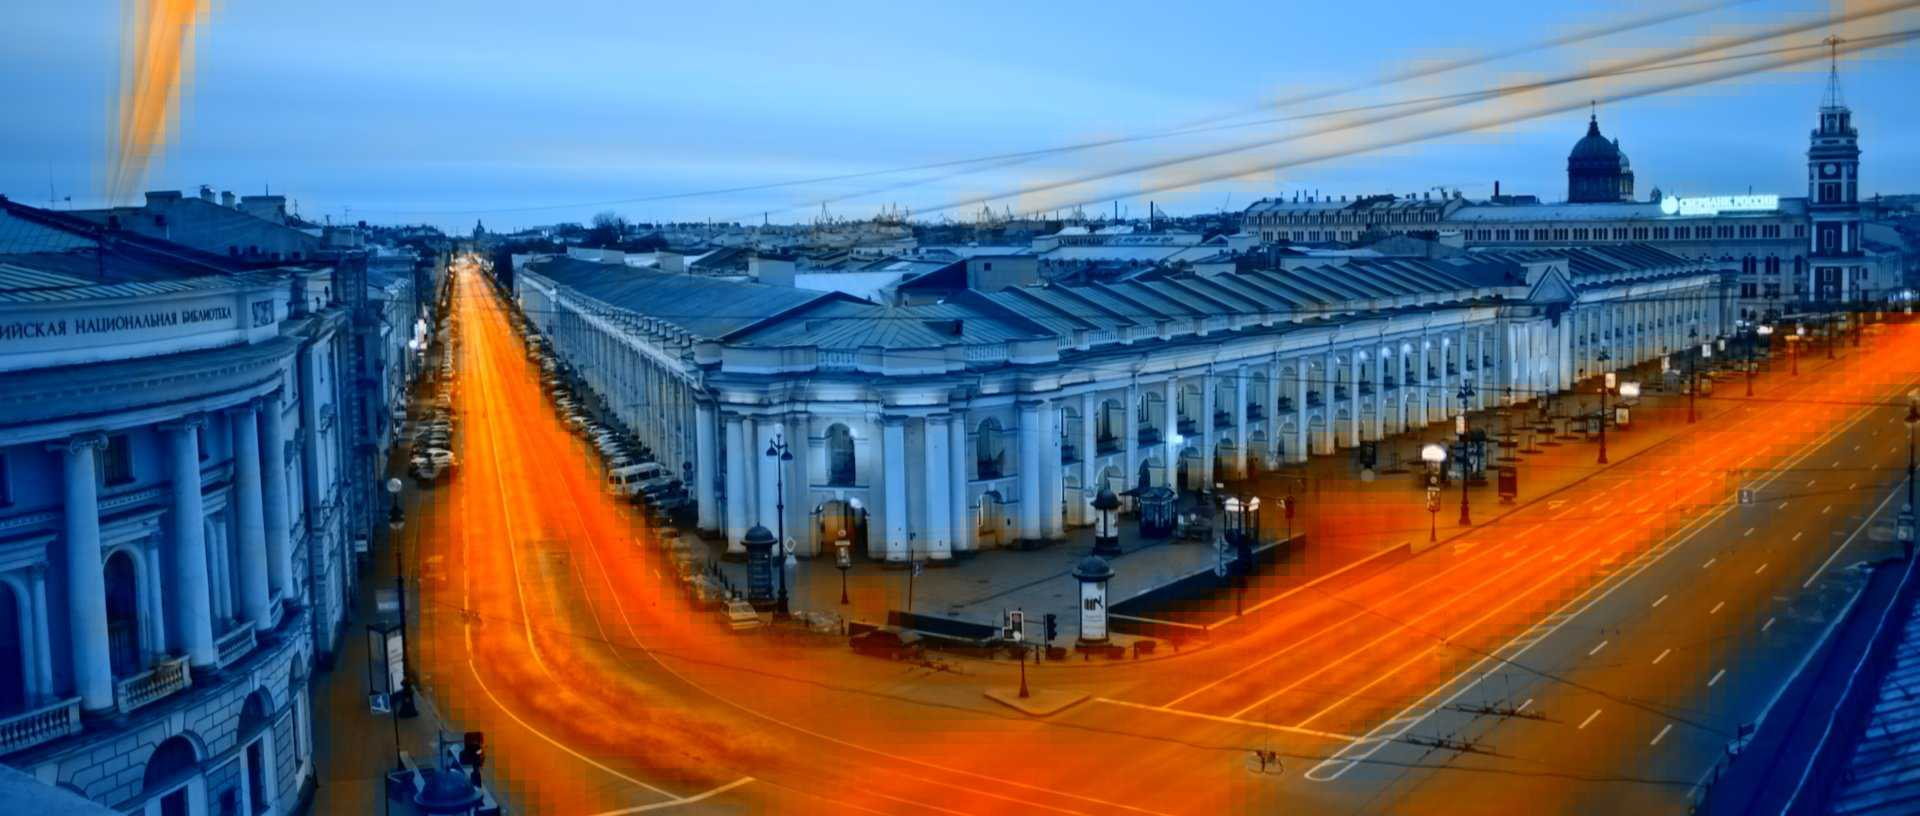 St. Petersburg motion heatmap overlay